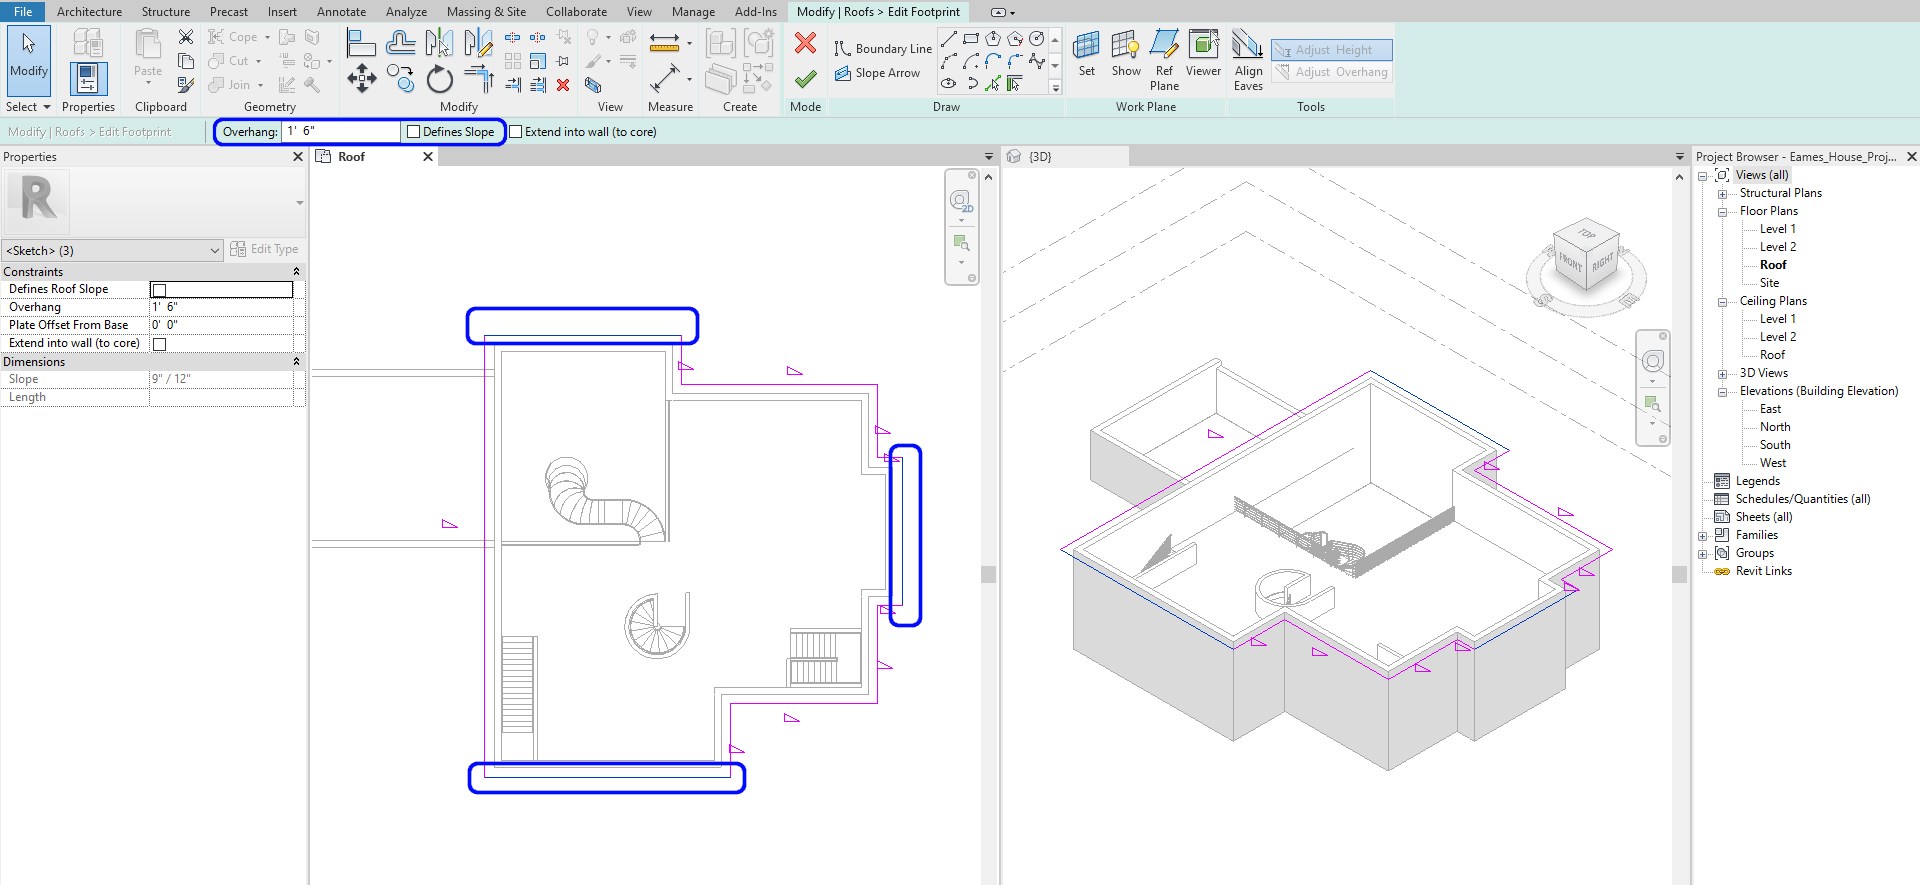 It shows the sketch for a hip roof.